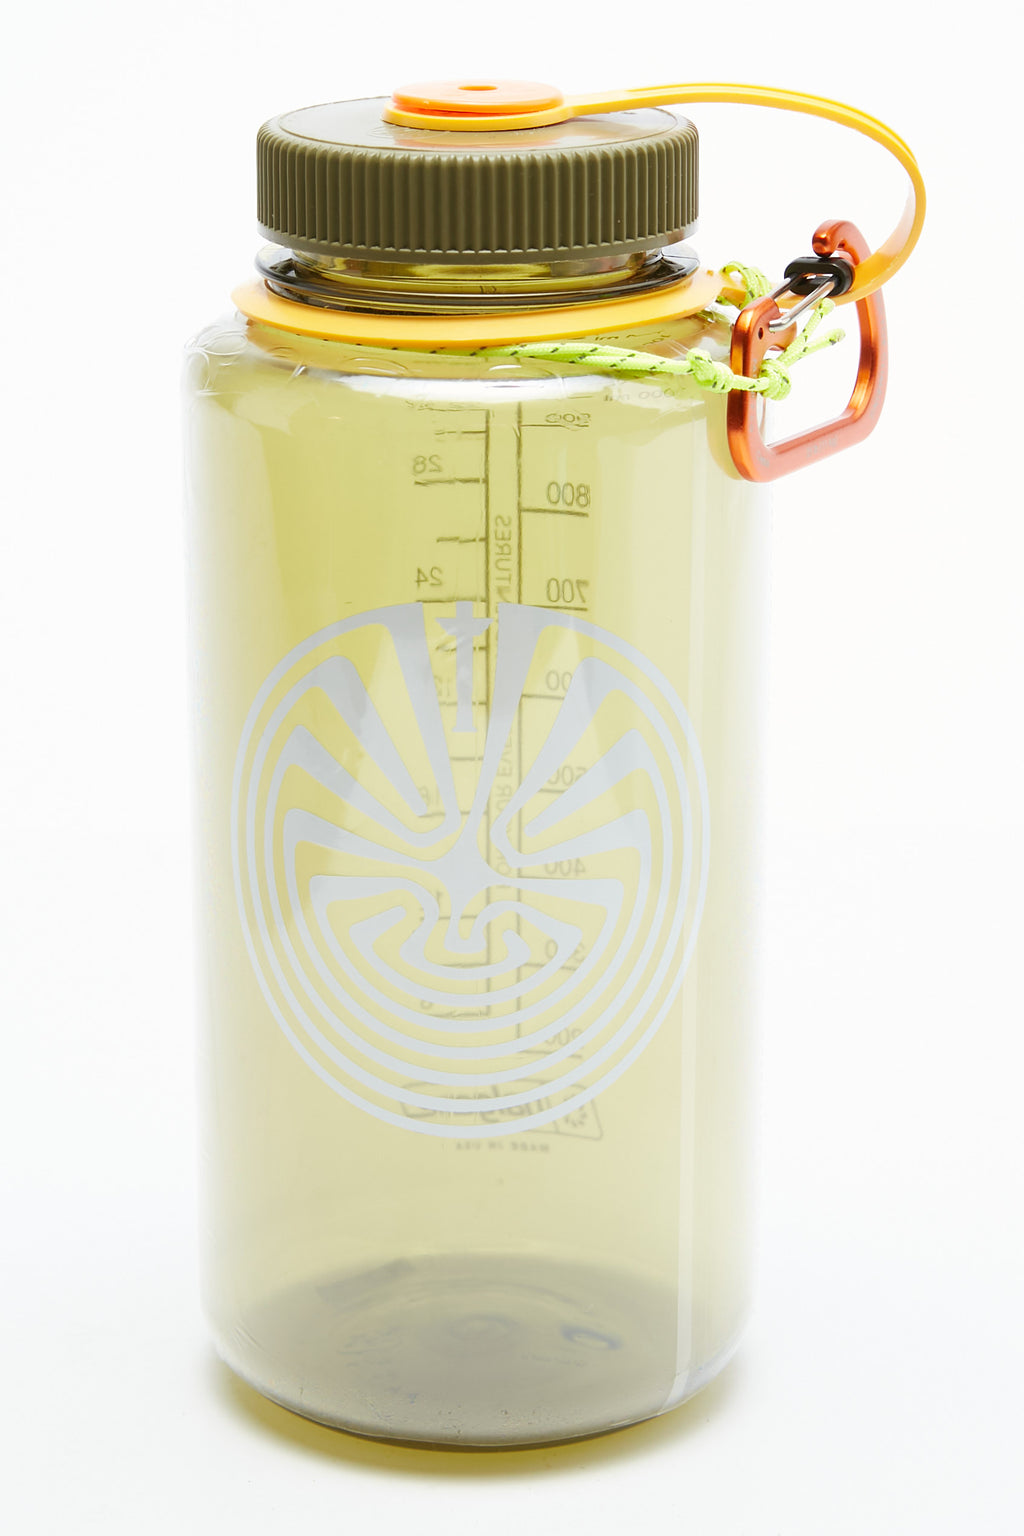 Totem Brand Co. x Nalgene x Nite-Ize Totem in the Maze 32oz Wide Mouth Water Bottle -  Olive with Earth-Sunflower-Pumpkin Cap